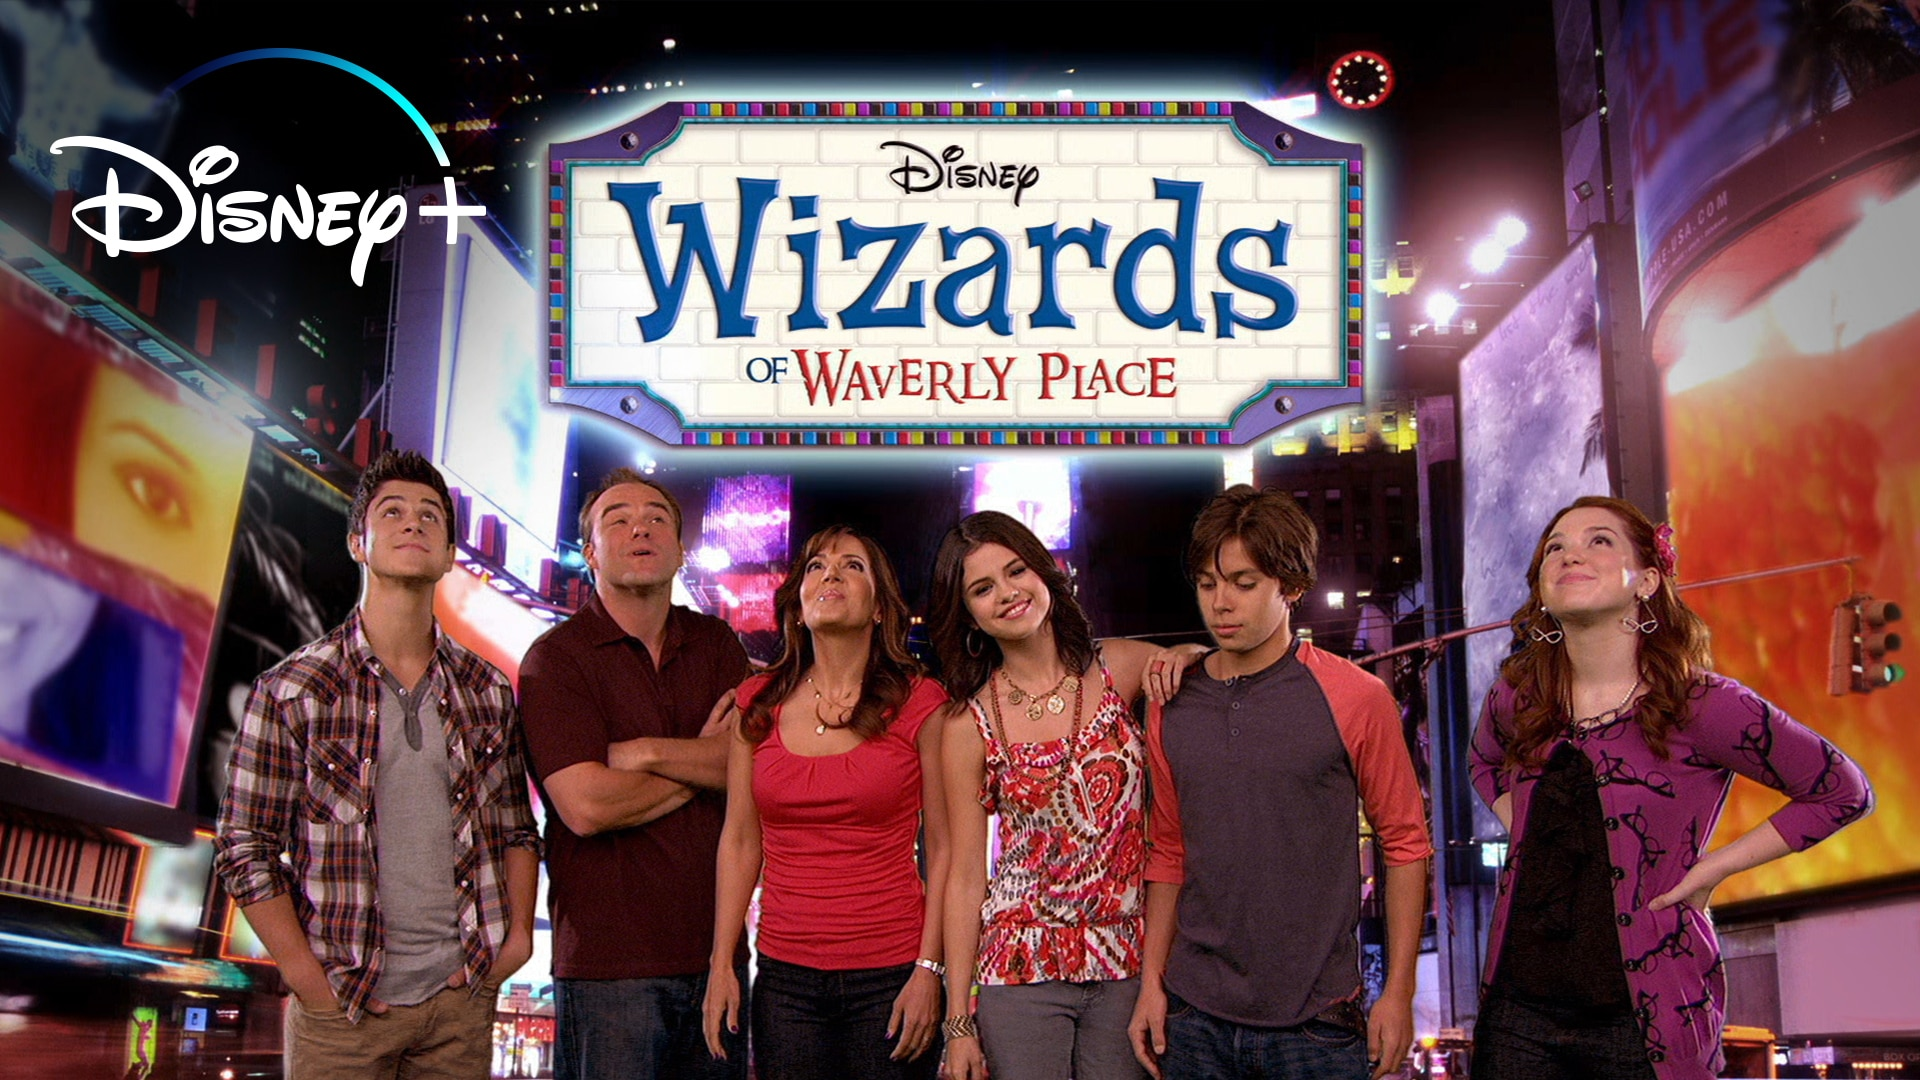 Wizards of Waverly Place - Theme Song | Disney+ Throwbacks | Disney+